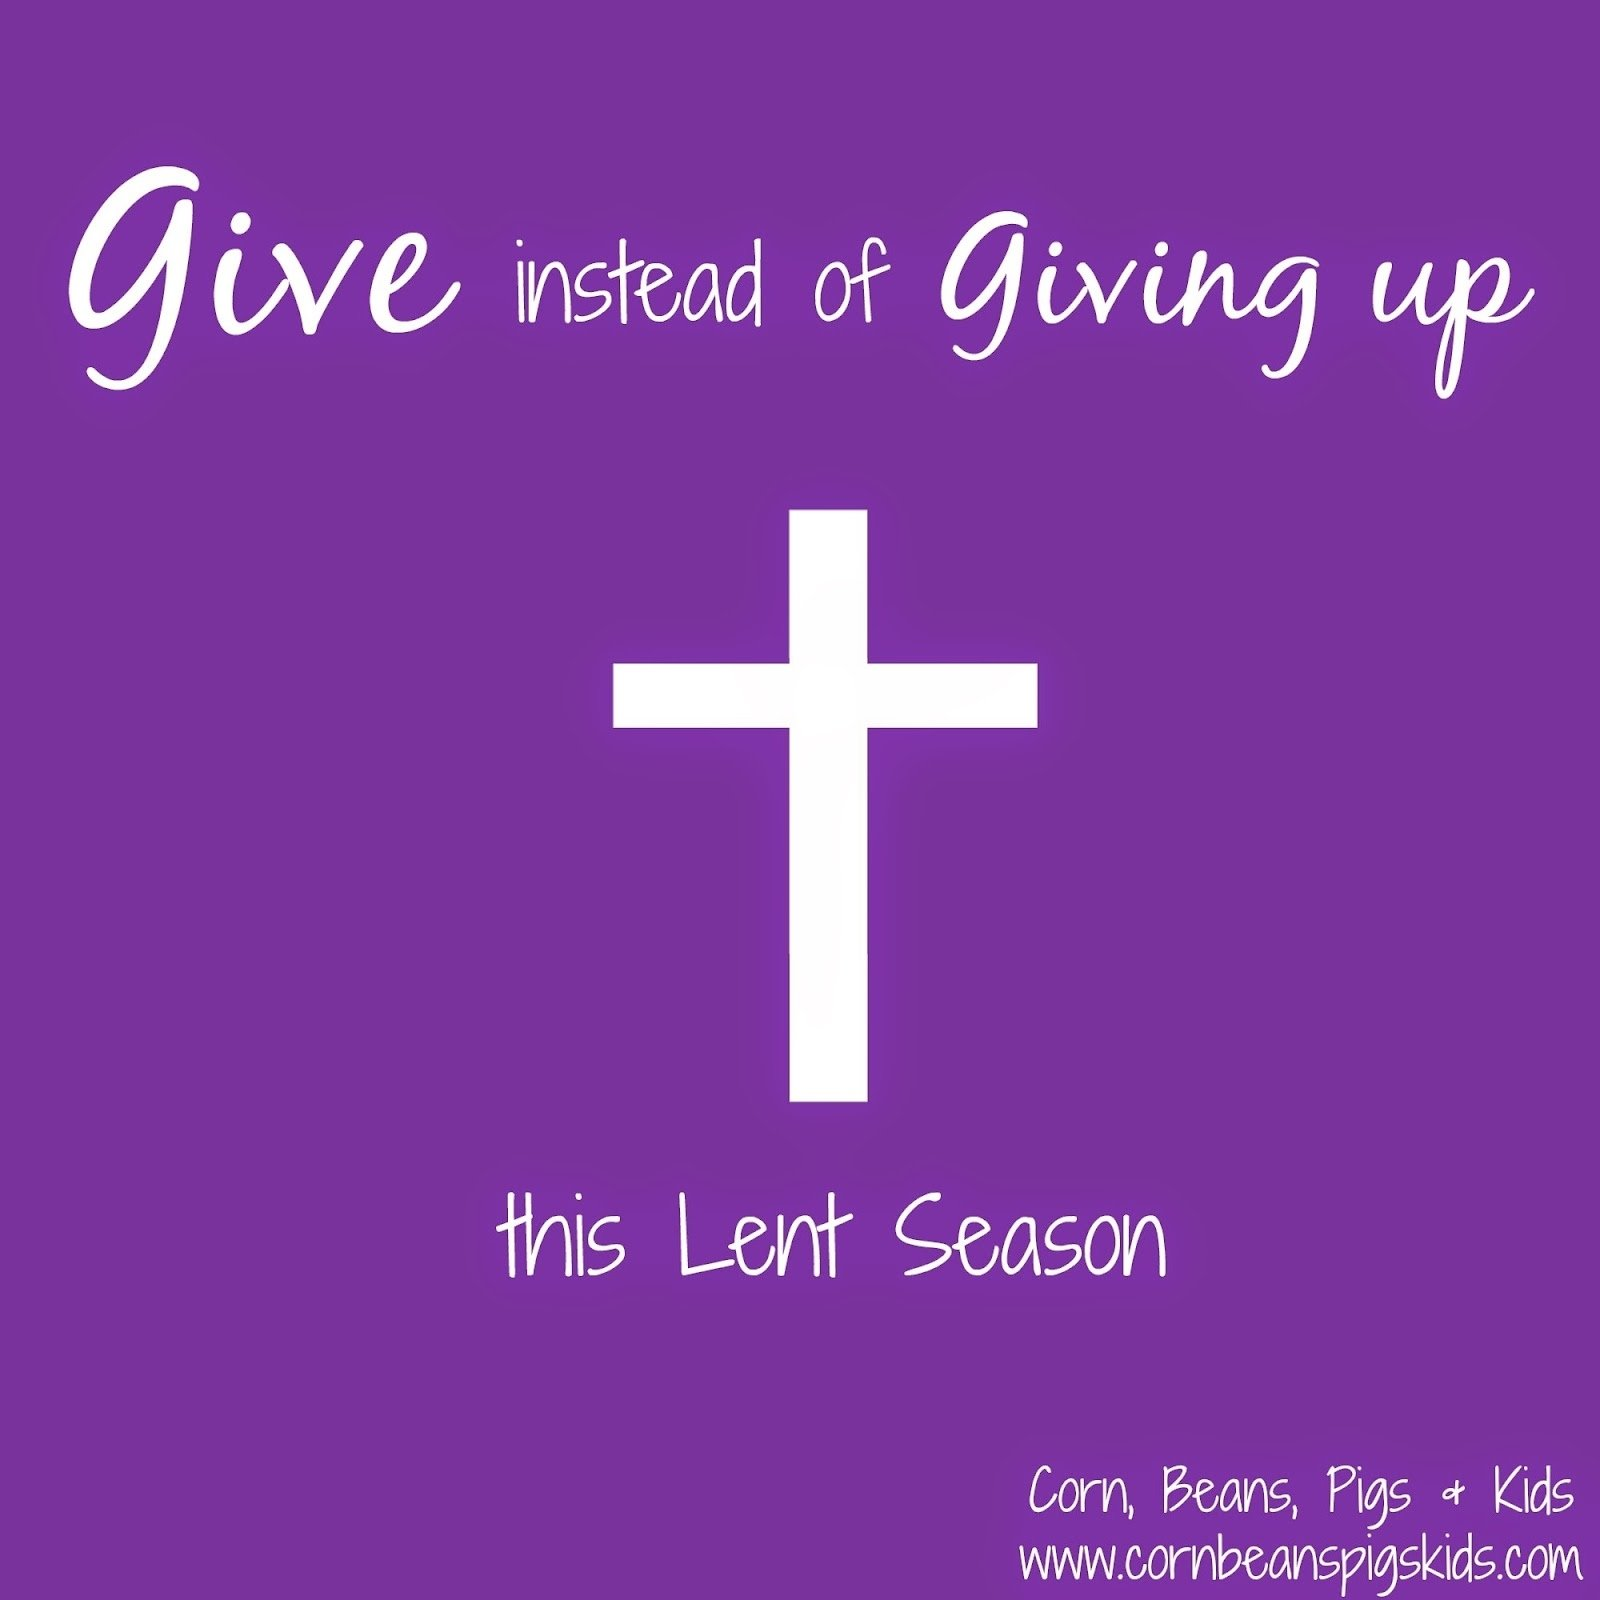 10 Fashionable What To Give Up For Lent Ideas corn beans pigs and kids give instead of giving up this lent 2 2021